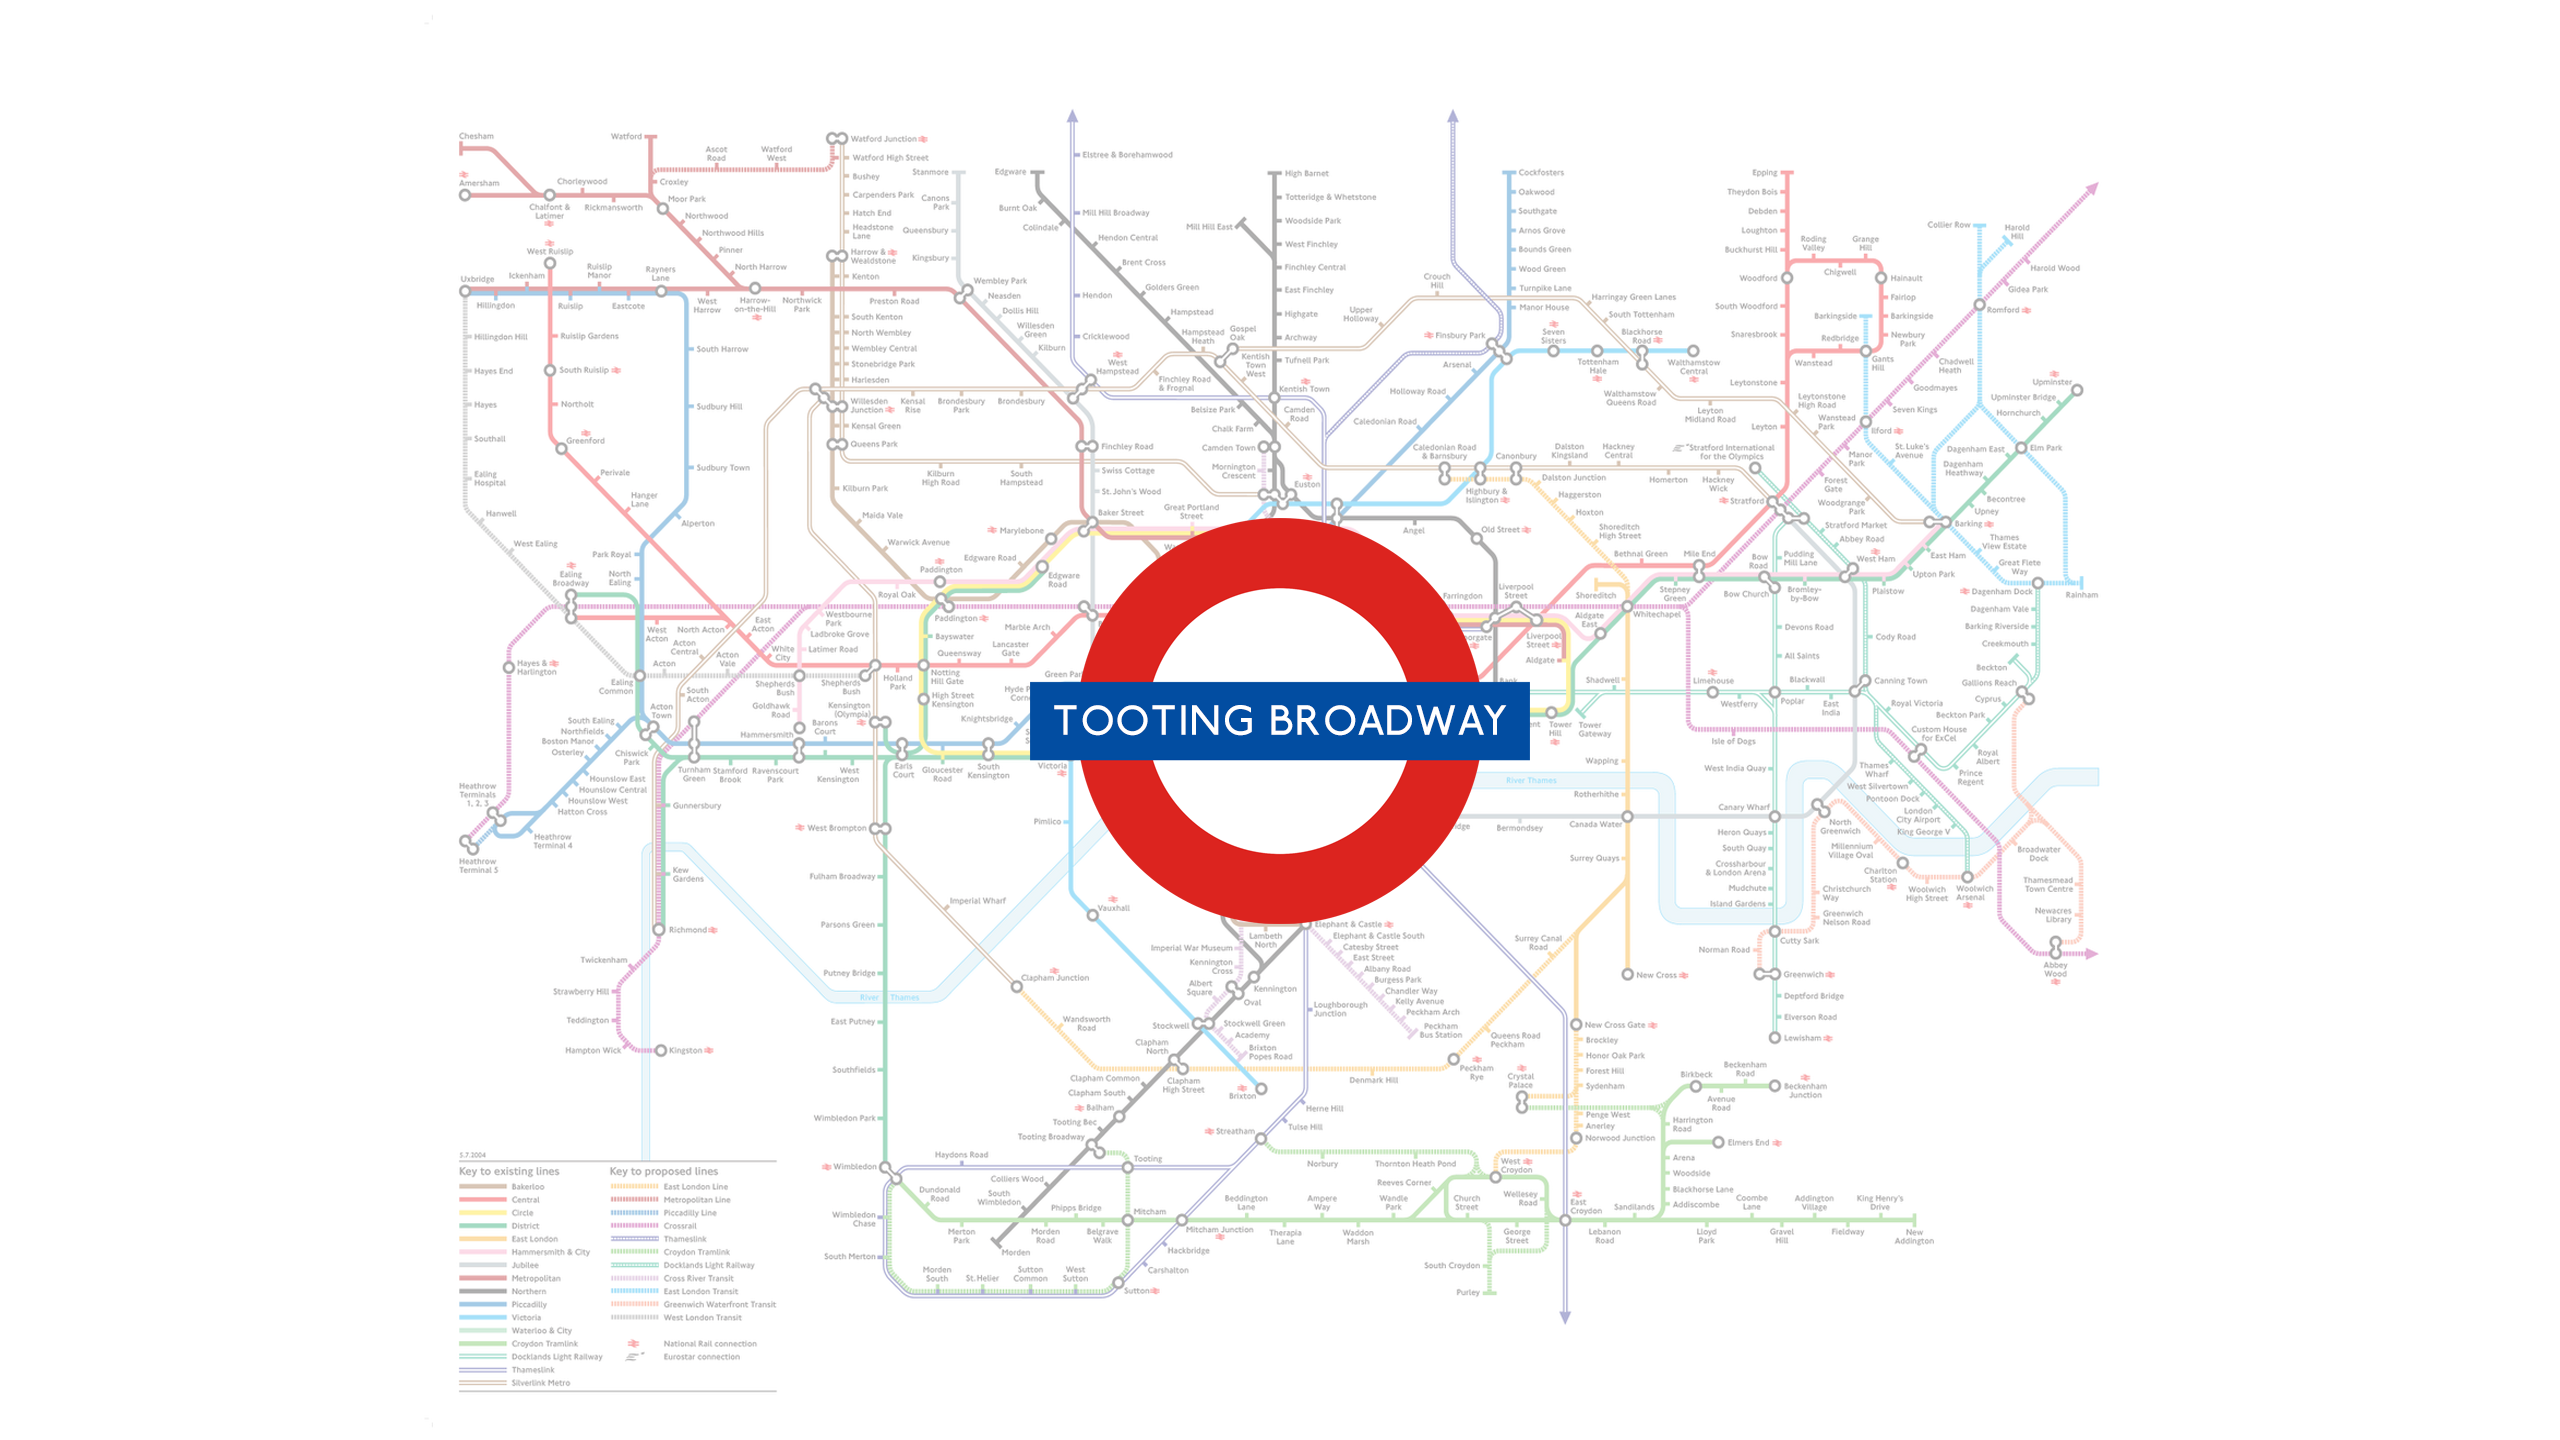 Tooting Broadway (Map)